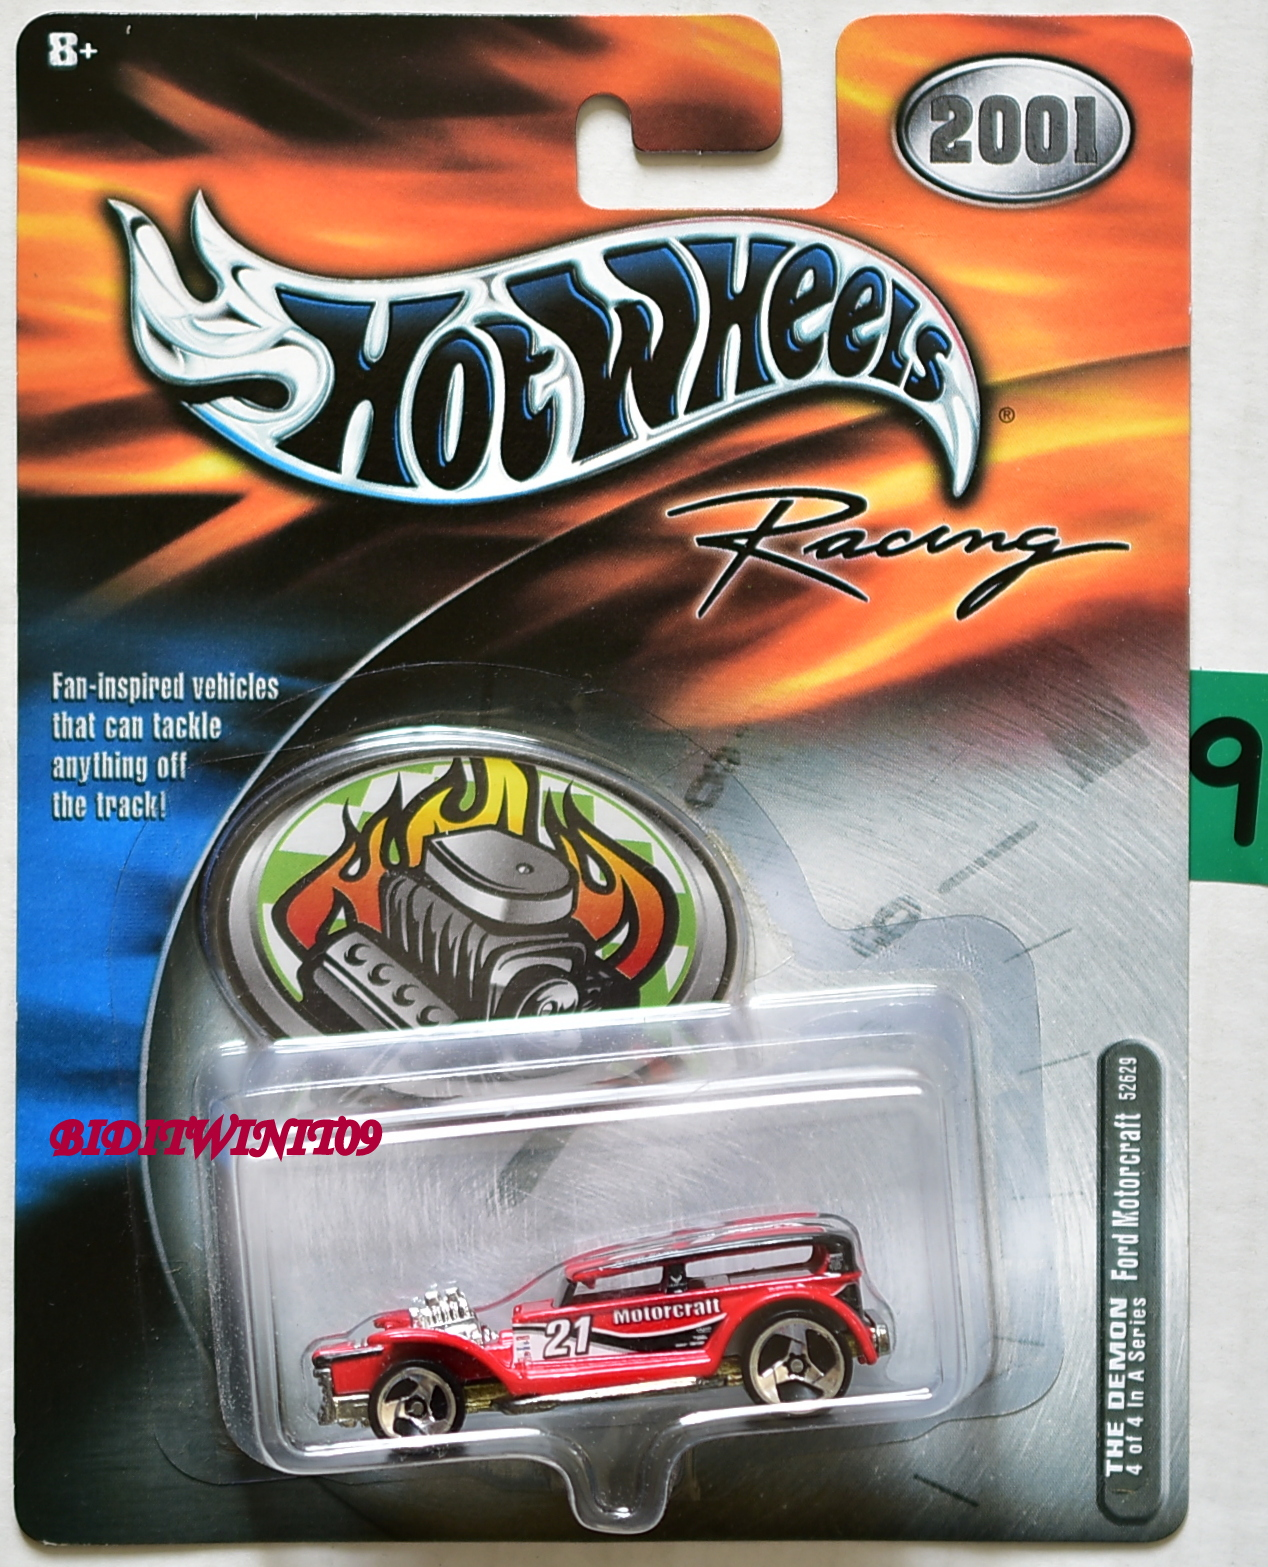 2001 HOT WHEELS RACING THE DEMON #4/4 FORD MOTORCRAFT E+